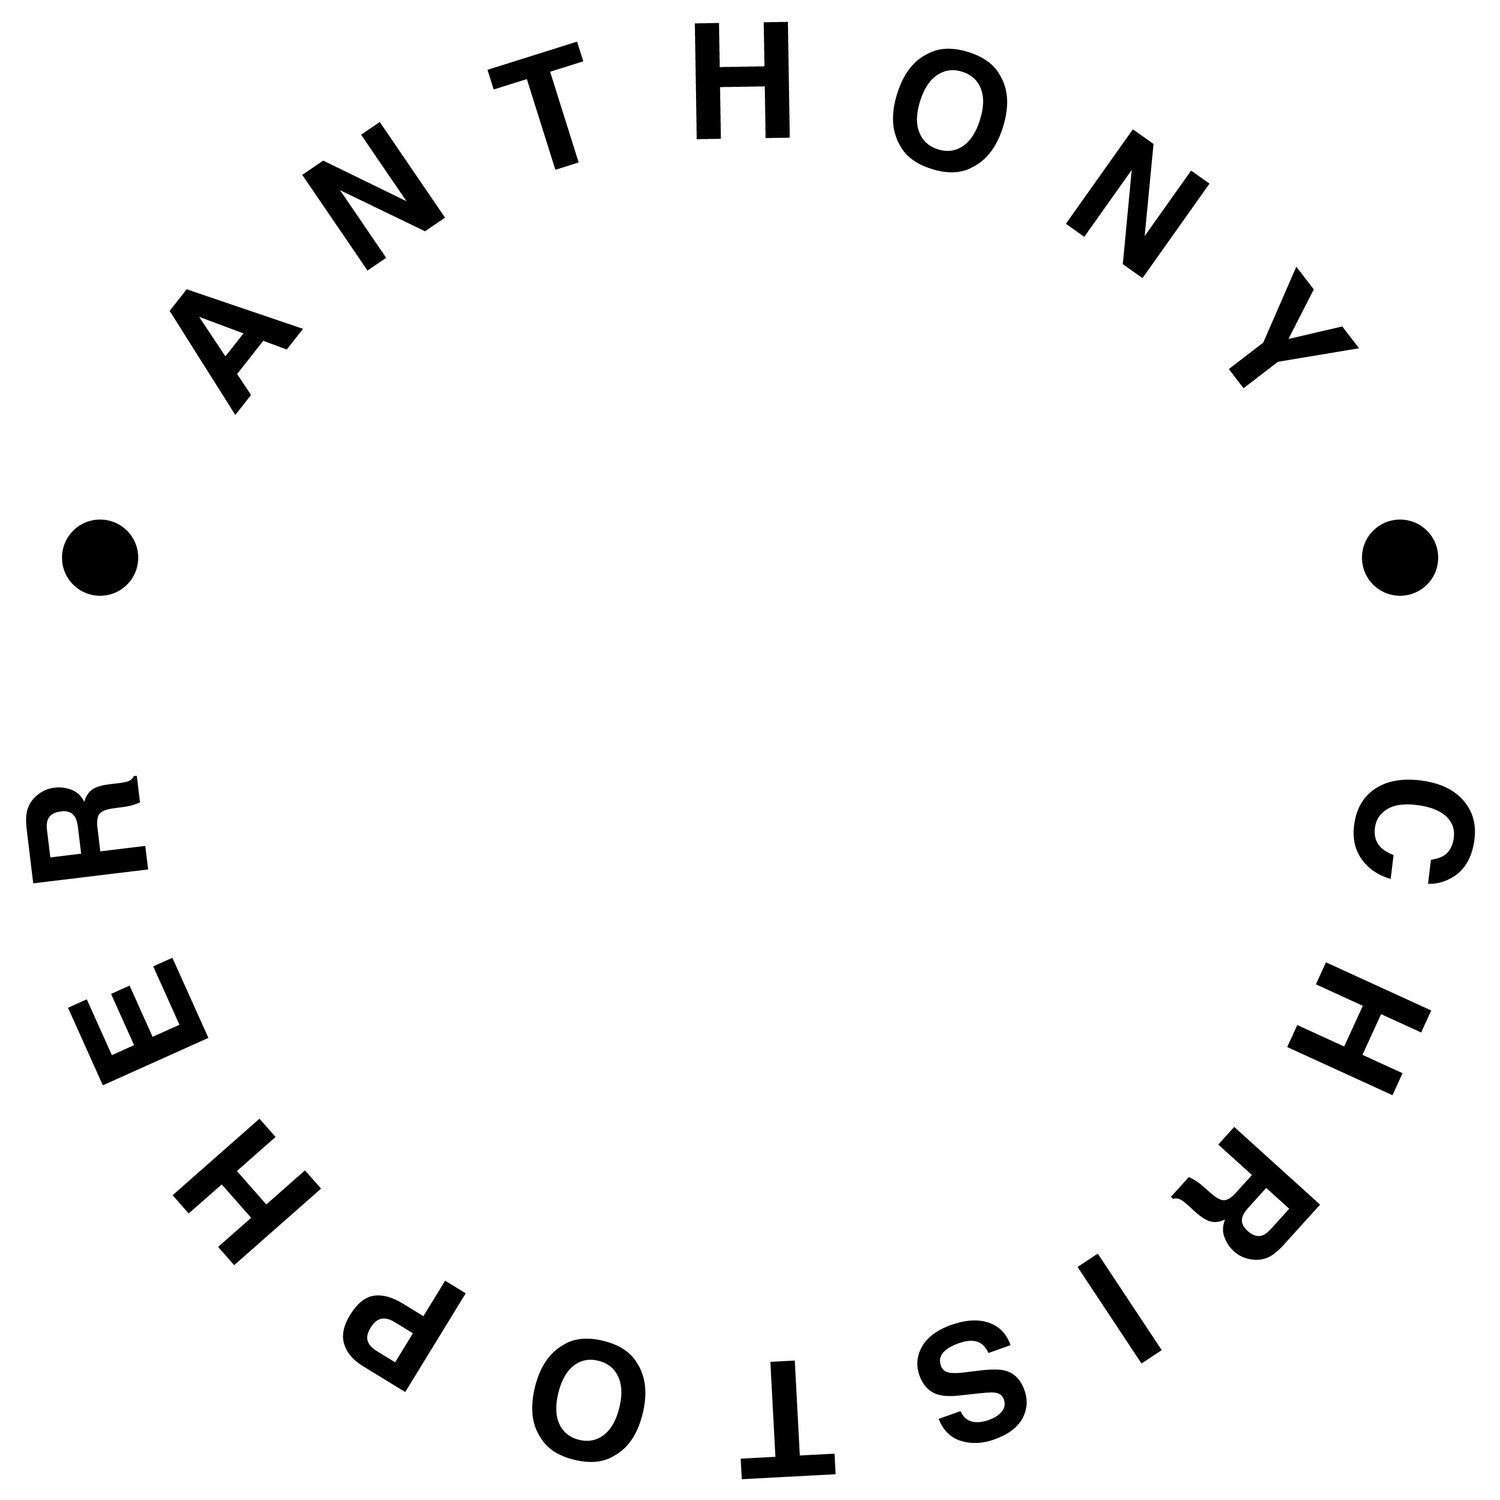 ANTHONY CHRISTOPHER